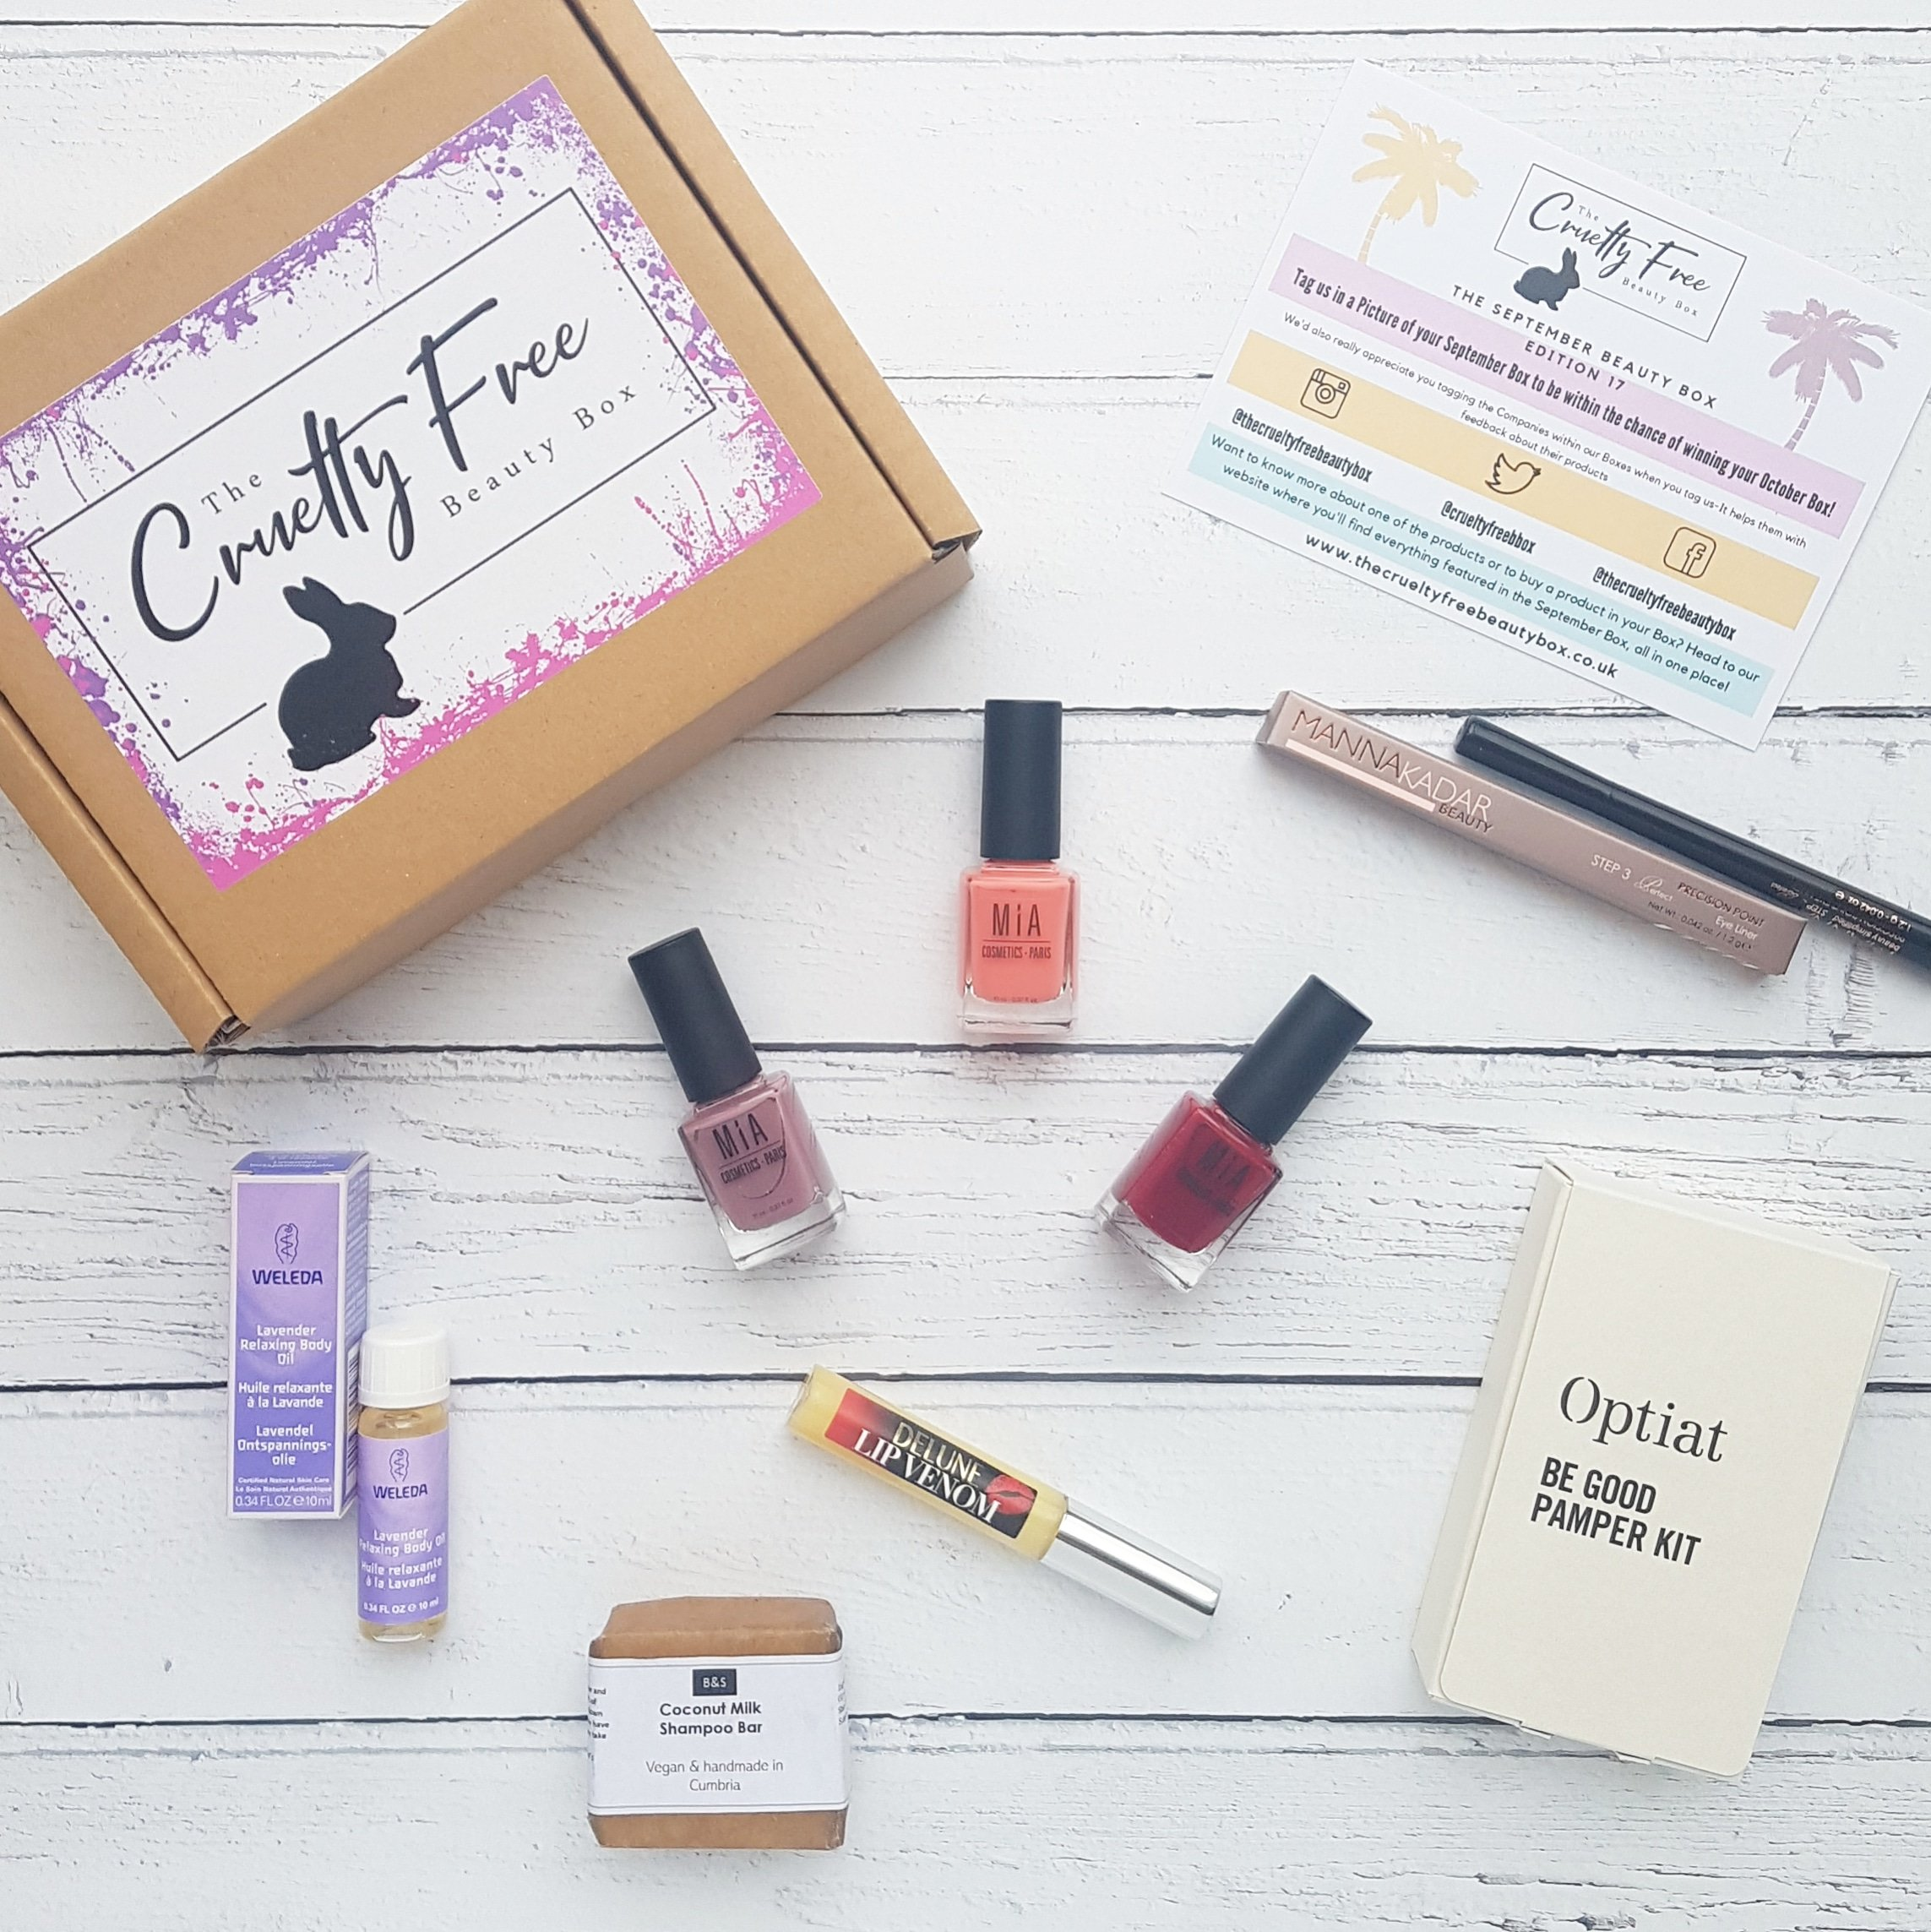 Cruelty Free Beauty Box - Example products